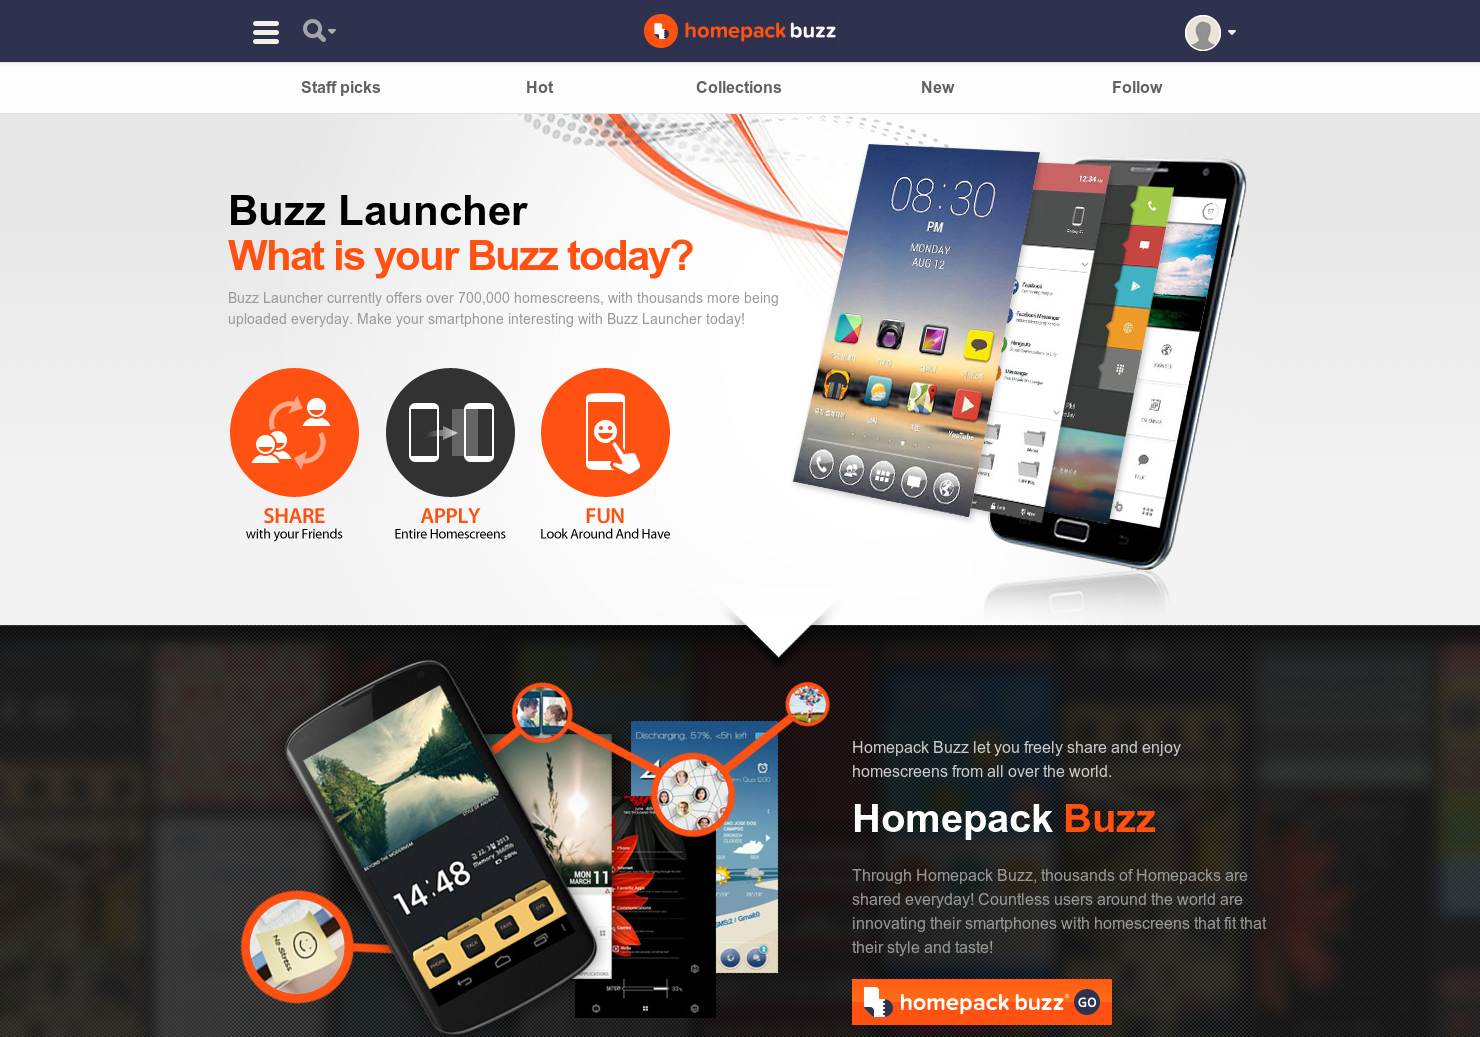 Buzz Launcher - Share and enjoy homescreens from all over